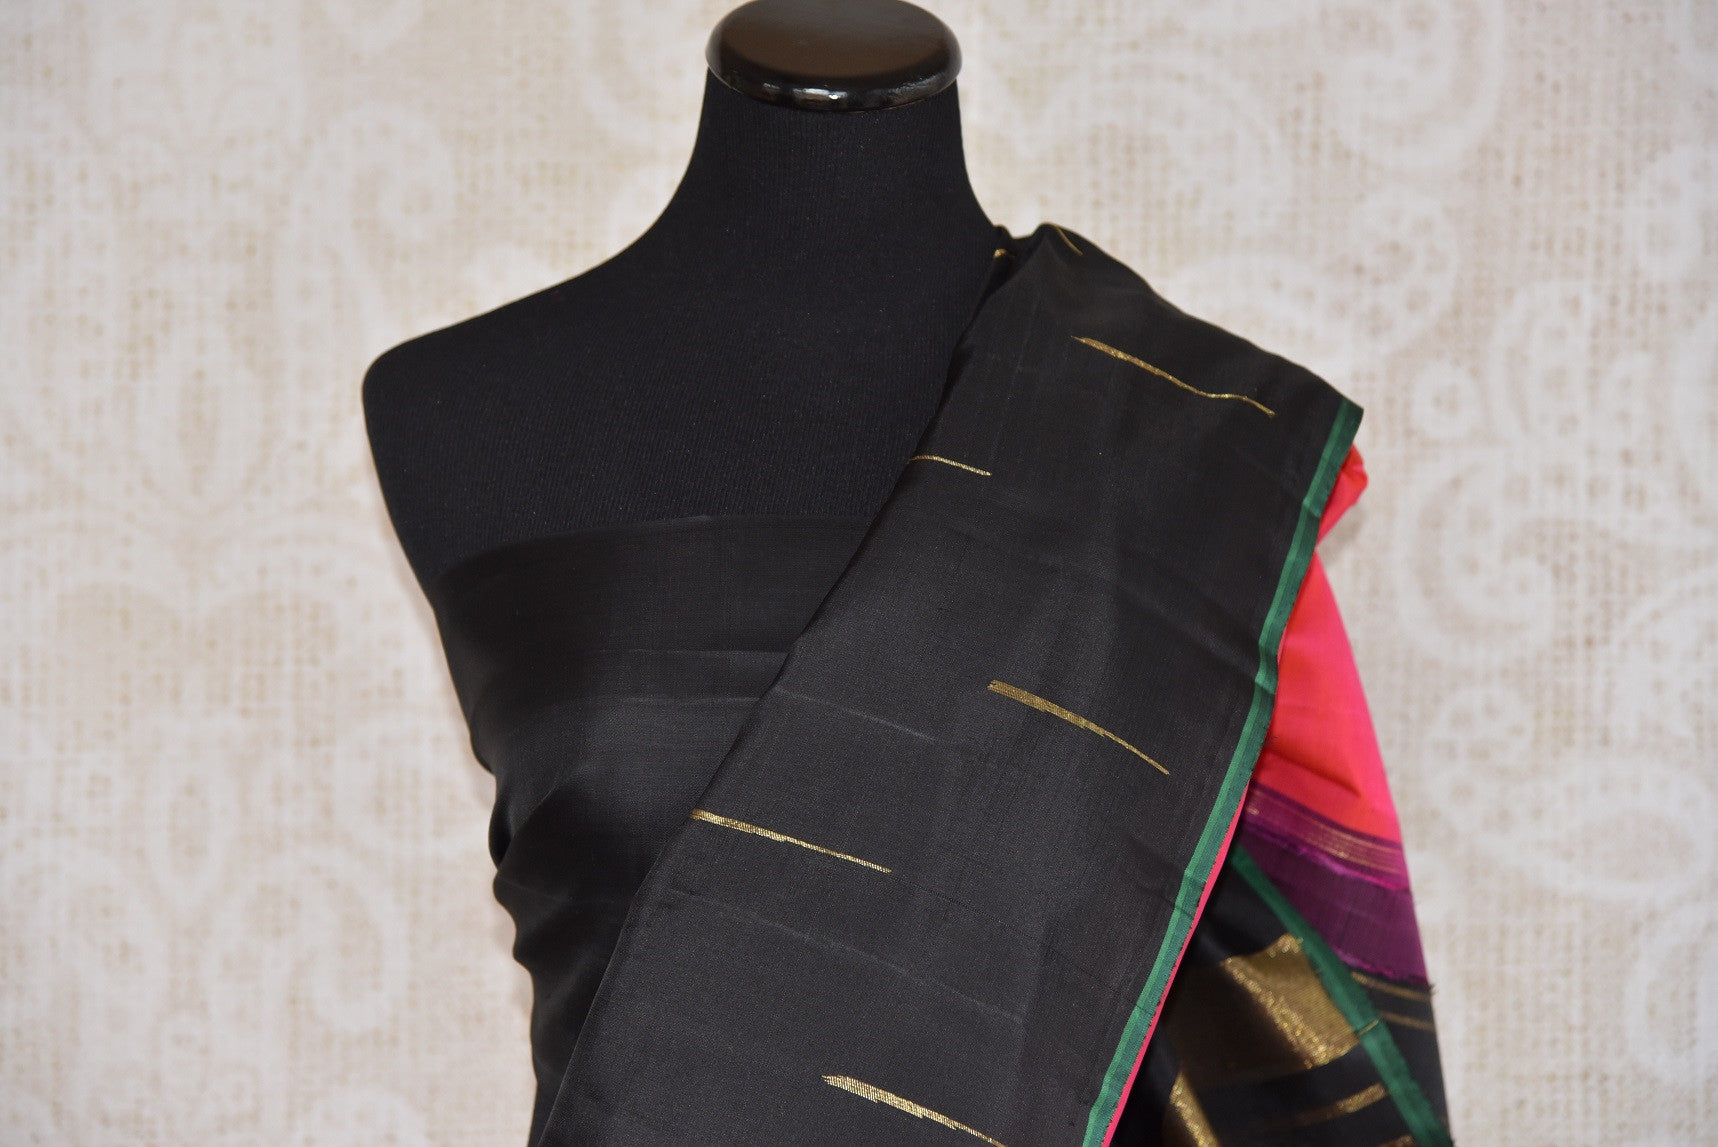 Shop this Indian traditional kanjivaram saree from Pure Elegance online or from our store in USA. Perfect for any wedding, reception, engagement, sangeet party. Black Saree.